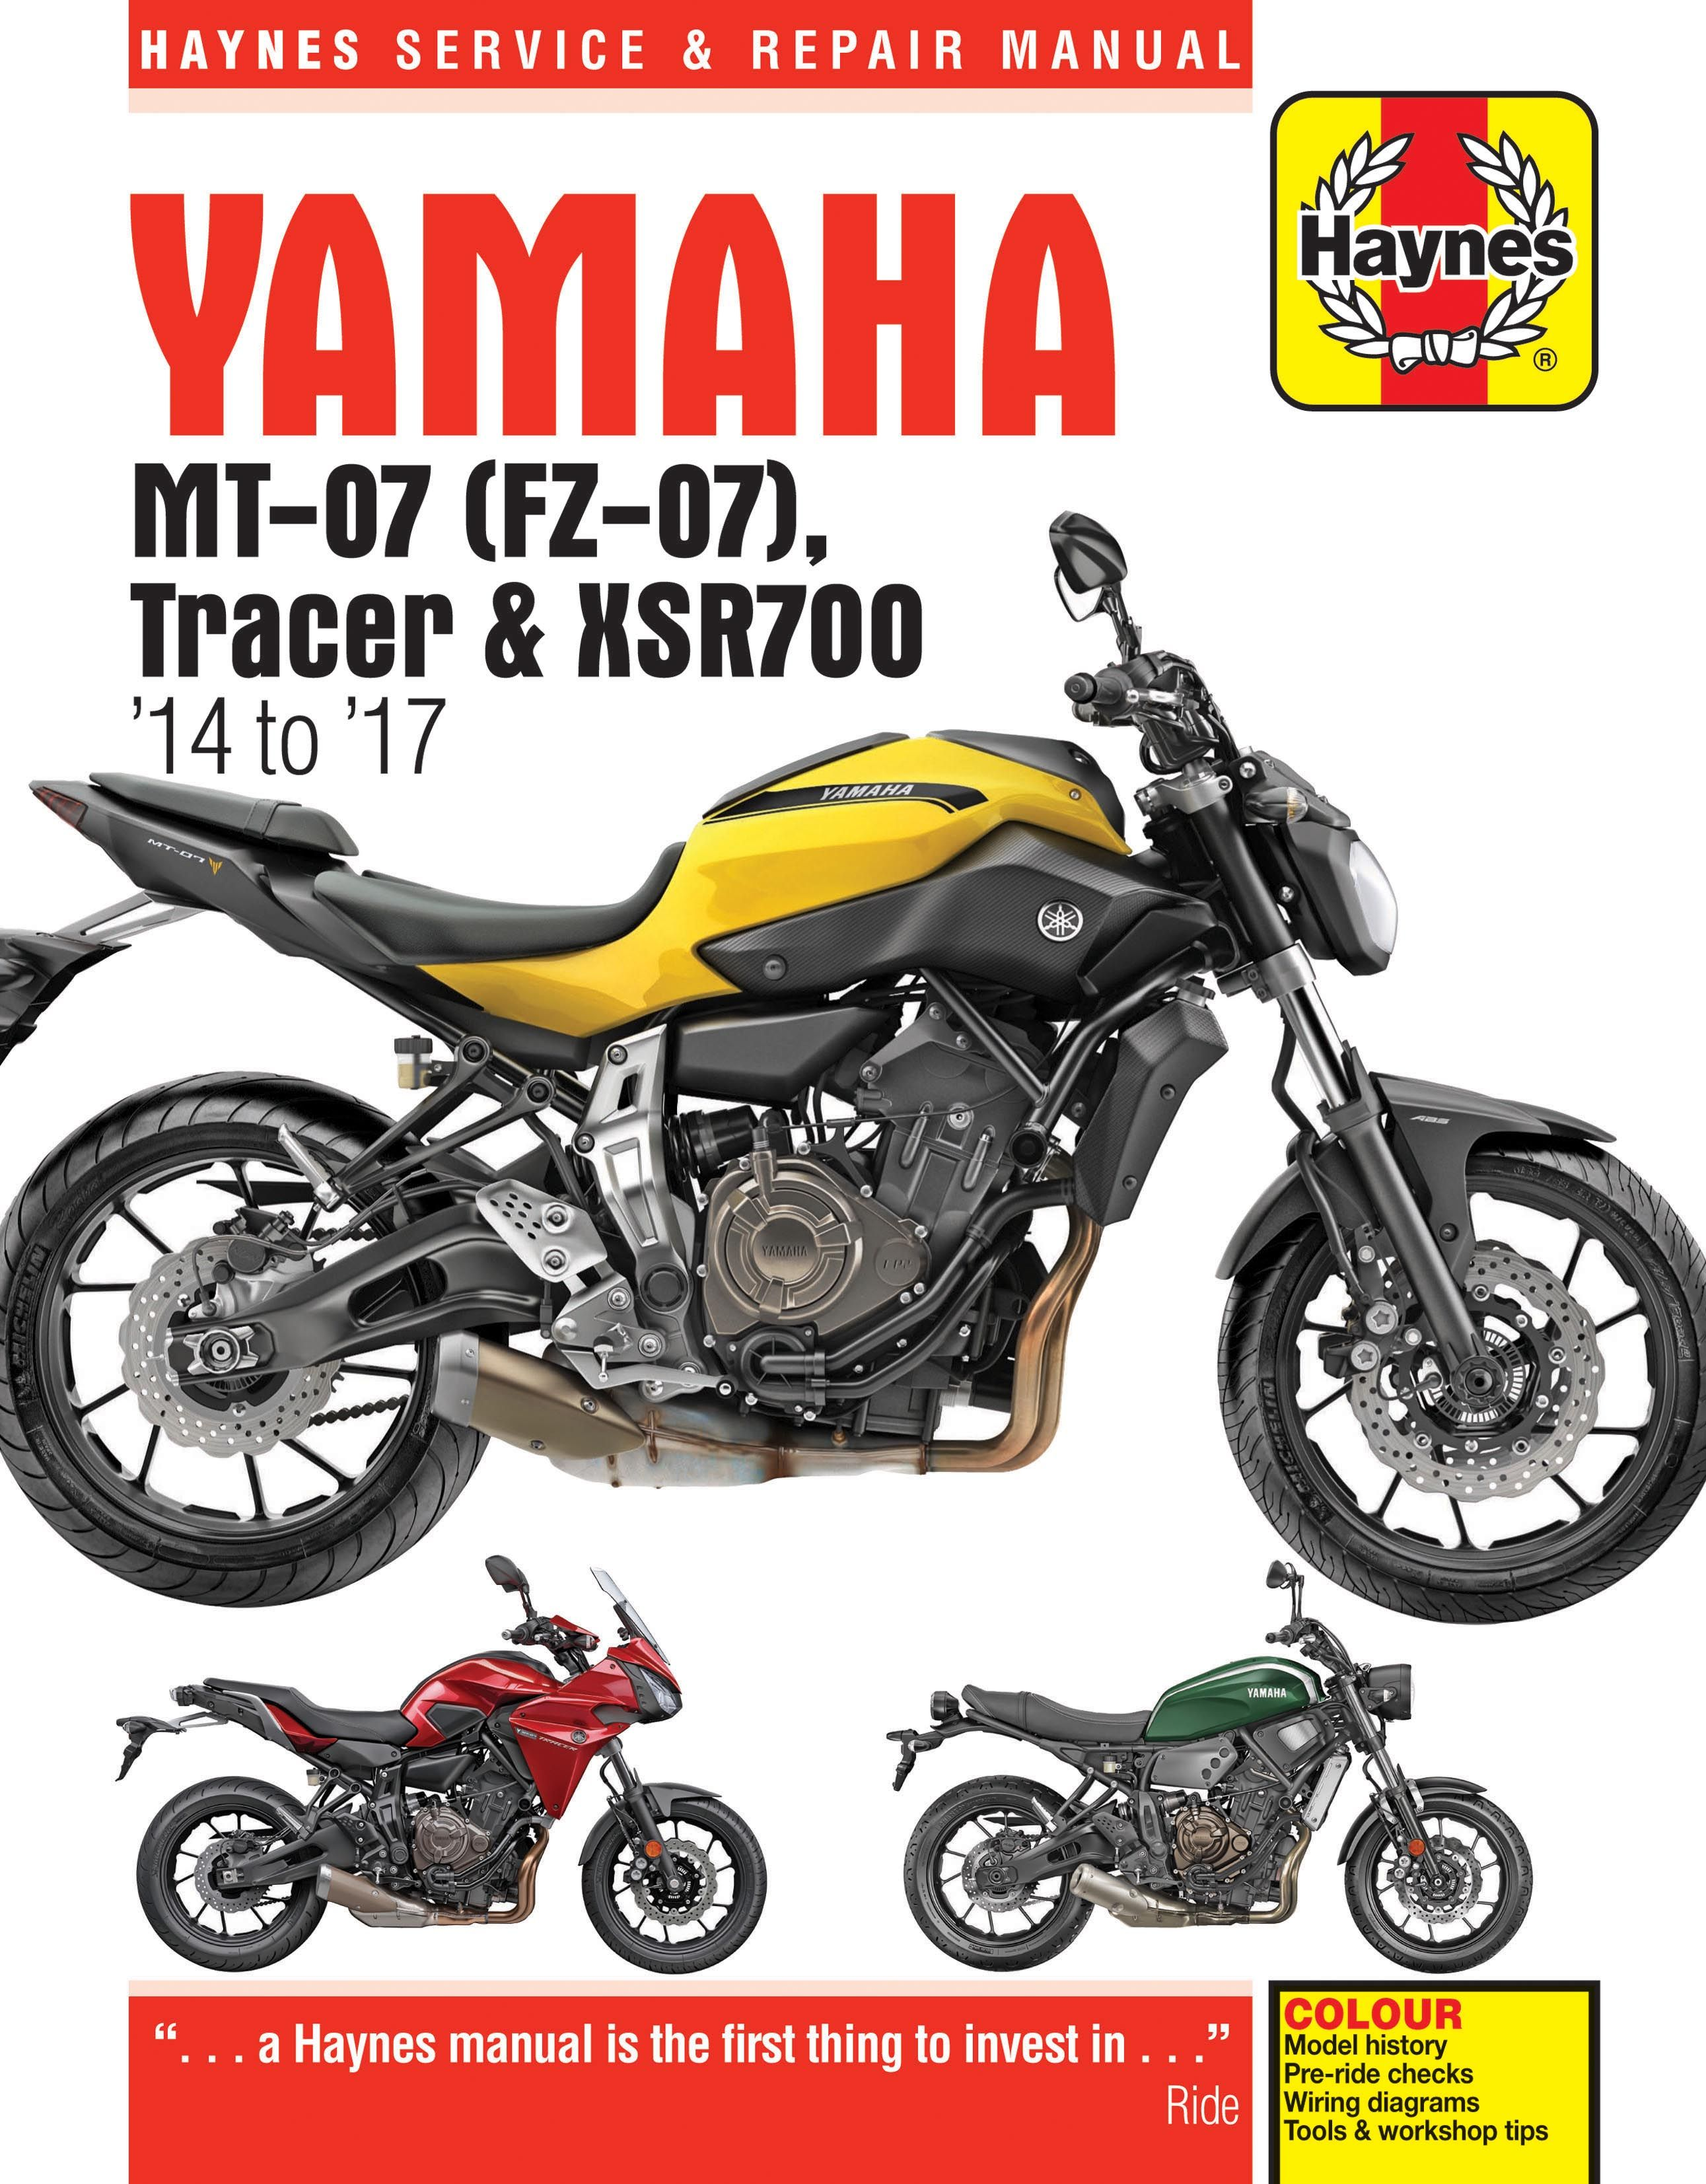 haynes launches manual for the yamaha mt 07 yamaha fz 07s pinterest rh pinterest com yamaha fzs 600 manual yamaha fzs manual pdf